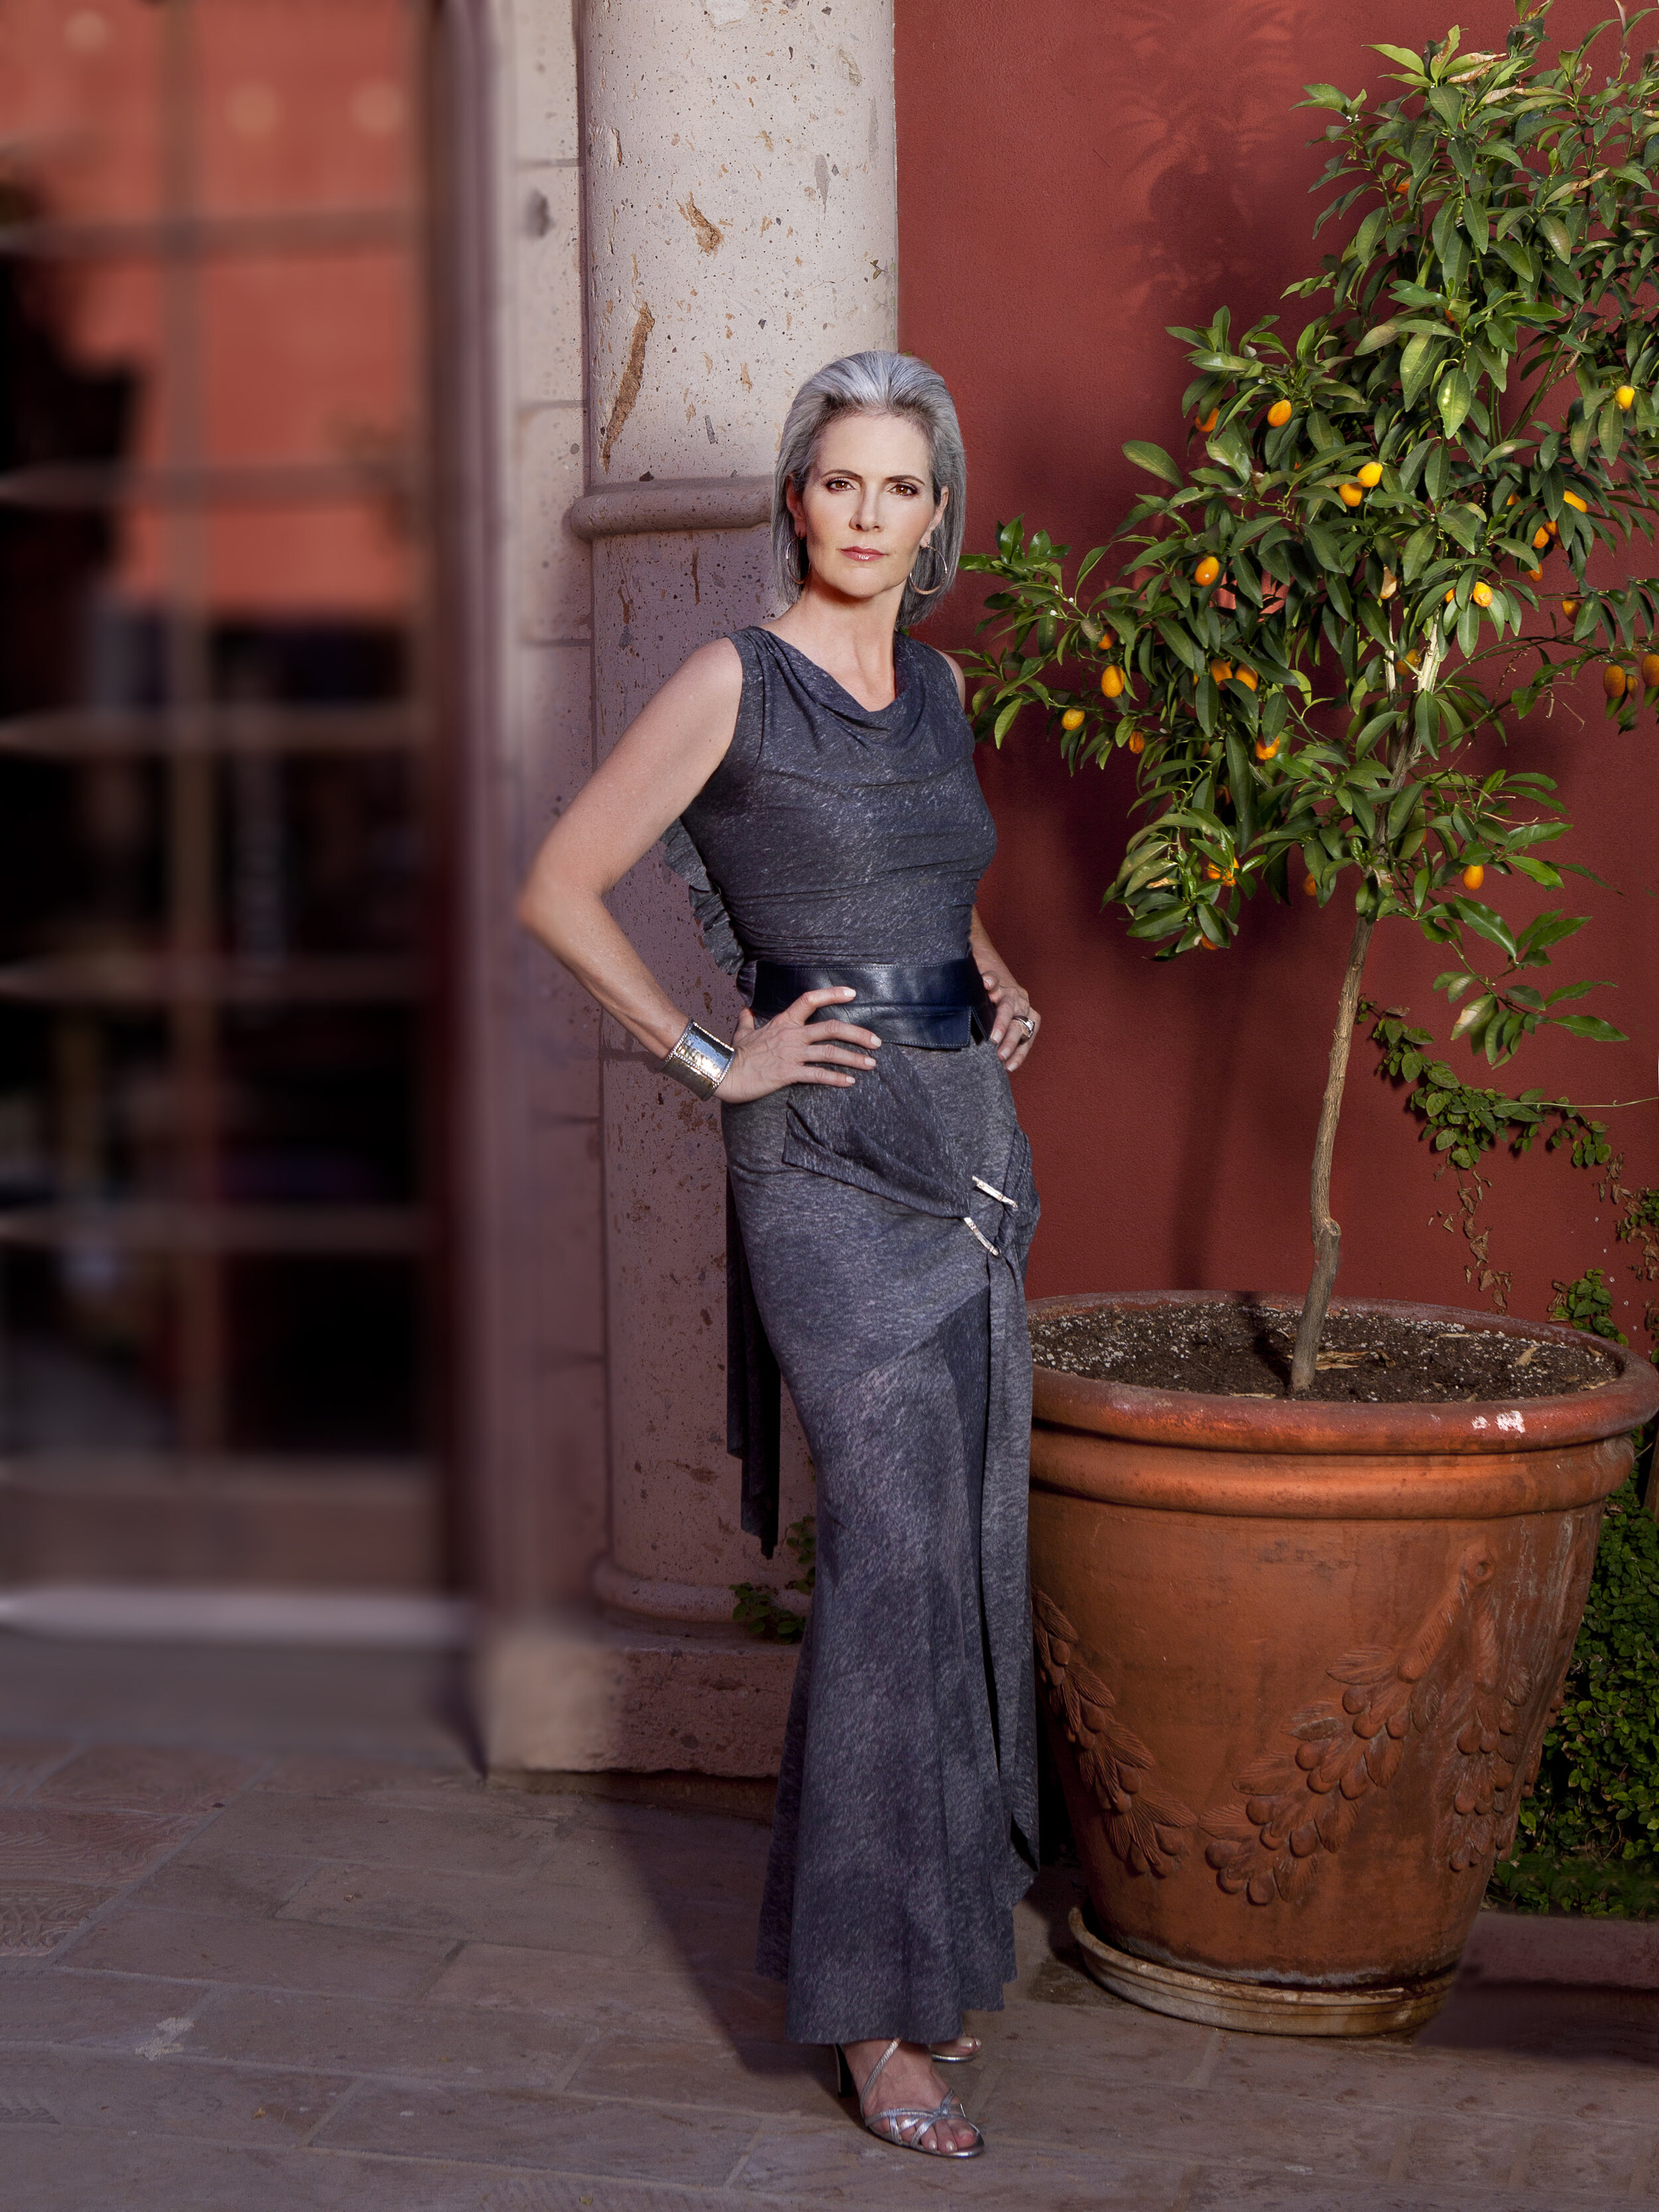 Two piece fit and flare evening wear long skirt and sleeveless top made of grey jersey with draped square neckline custom made by Alis Fashion Design for mother of the groom.jpg